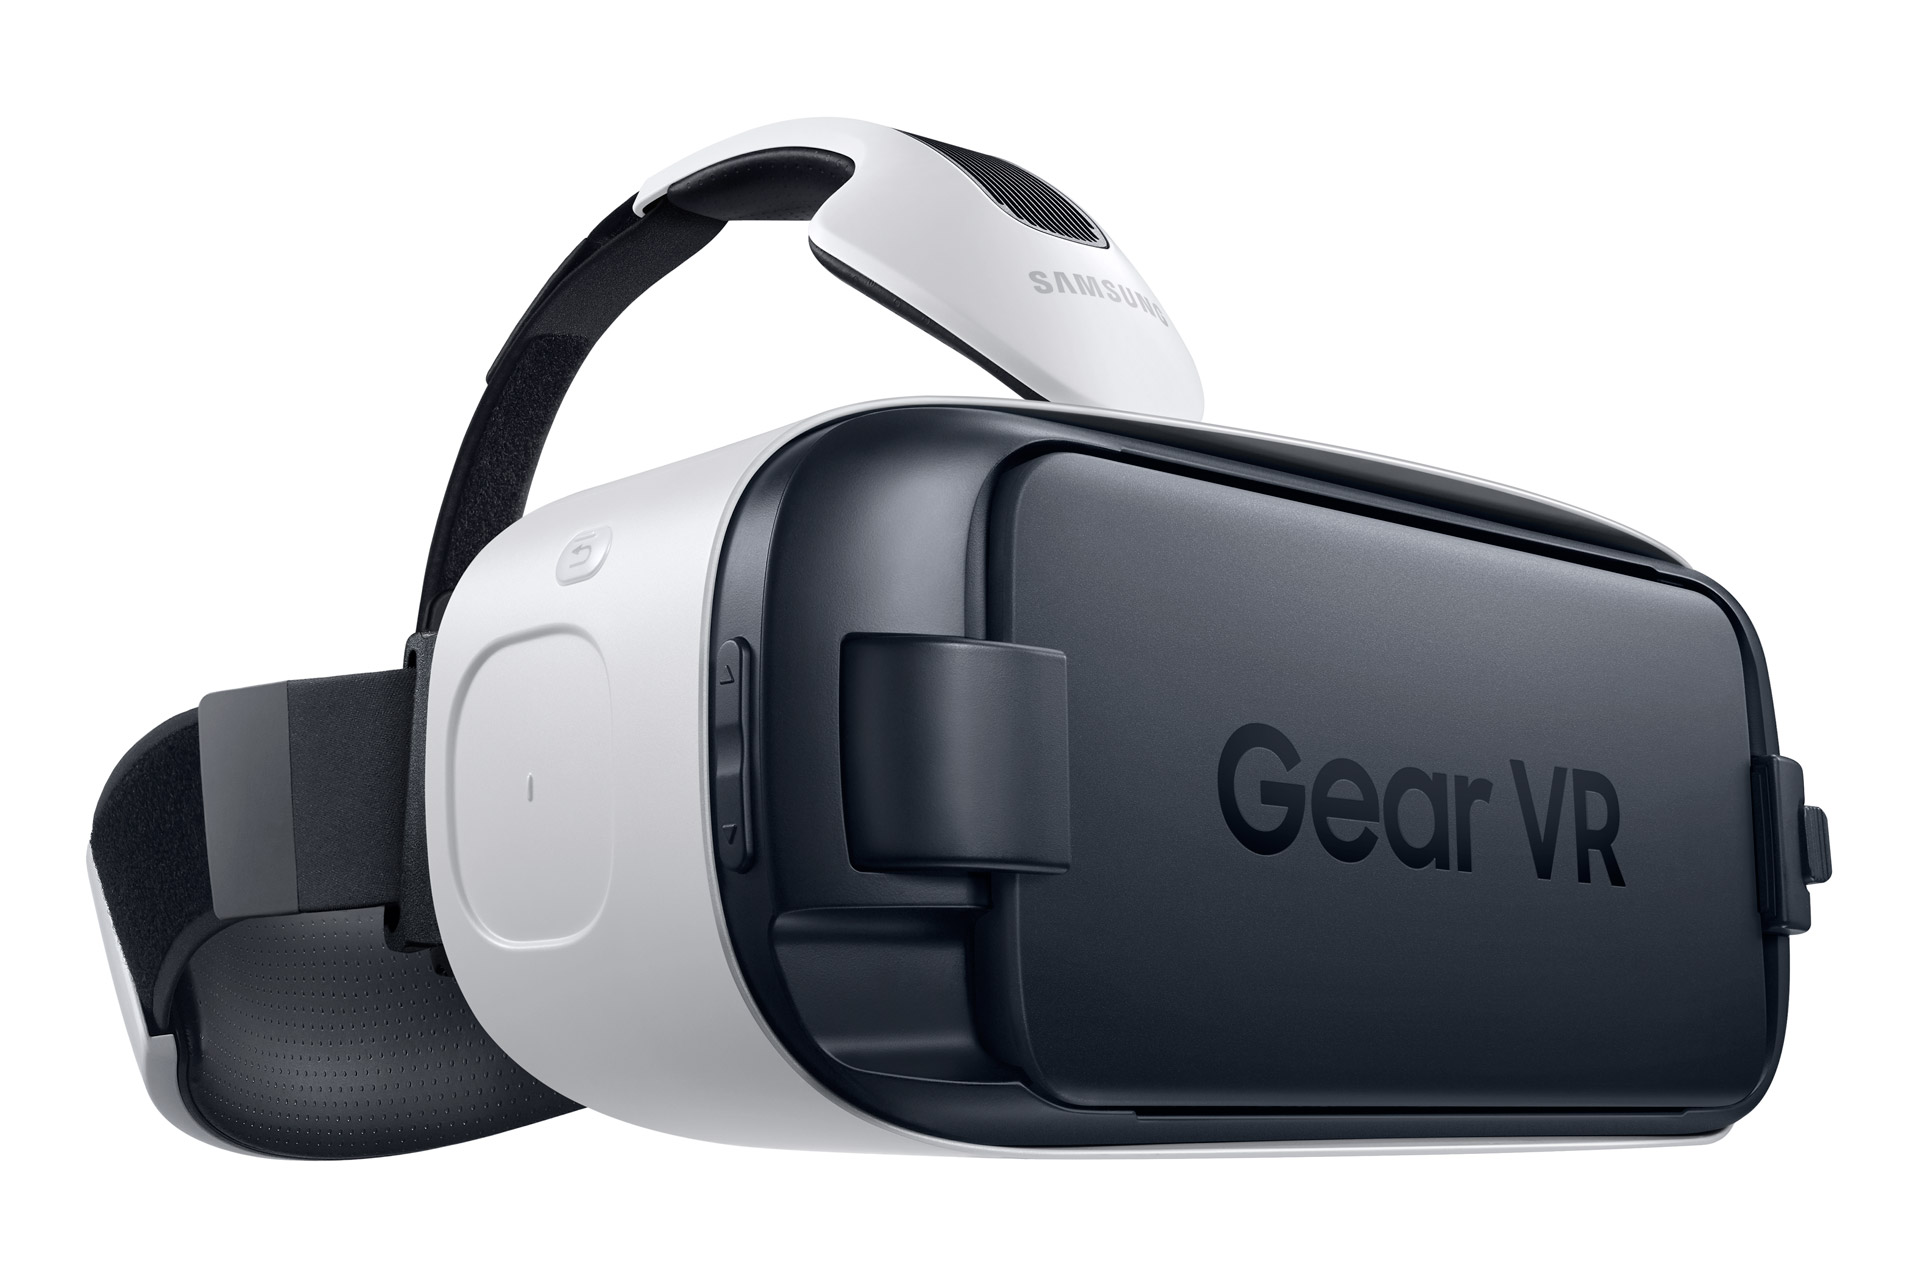 New Gear VR for Galaxy S6 and S6 Edge Goes on Sale May 8th in U.S, Pre-orders Start Tomorrow ...